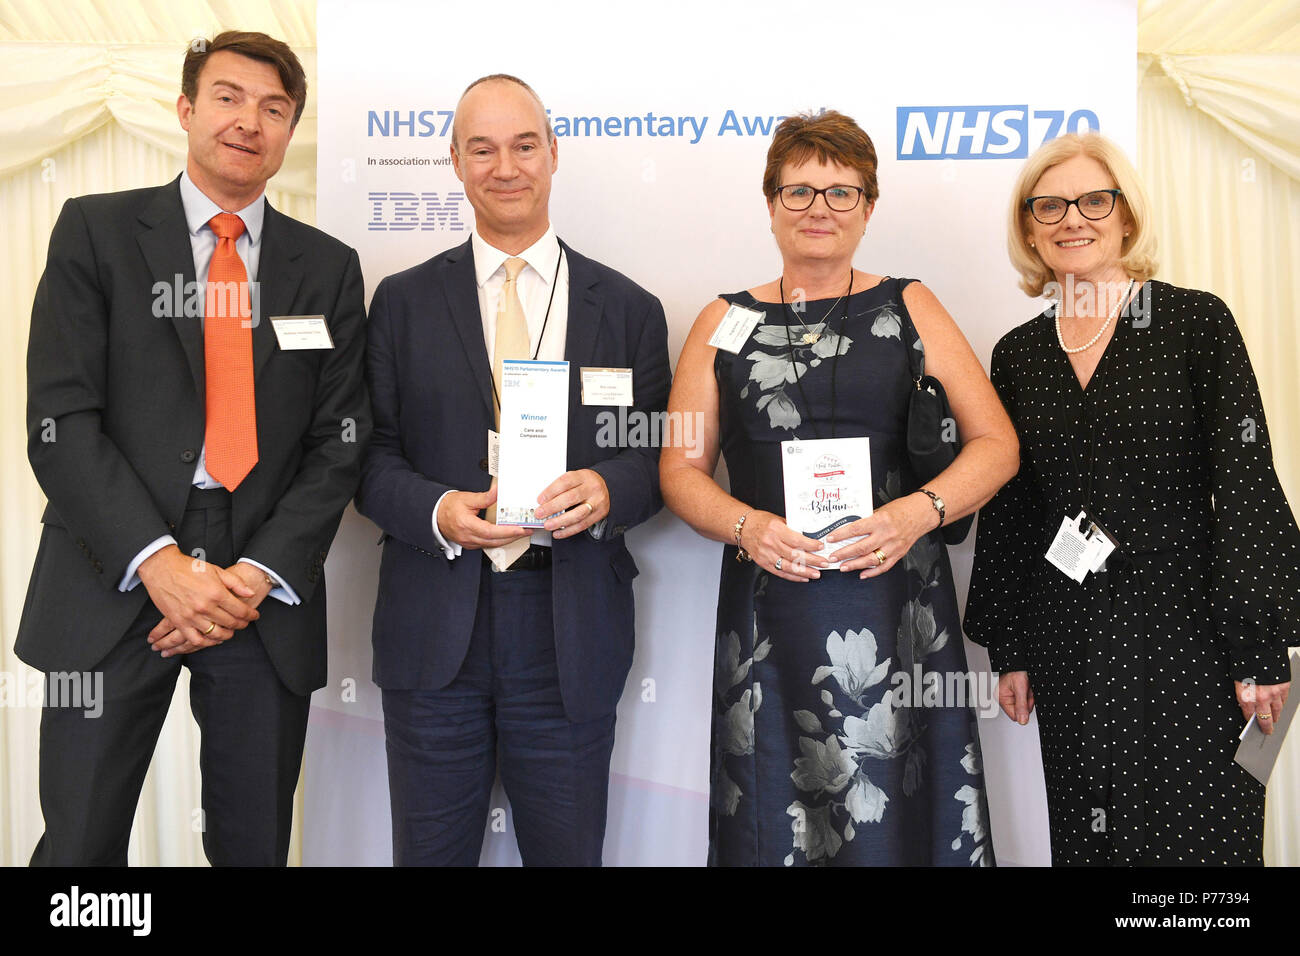 Angela Fenn (second right) and Nick Craver (second left) are given the Care and Compassion Award from Andreas Haimbock -Tichy (left) and Janet Davies (right) during the NHS70 parliamentary awards for the 70th anniversary of the NHS at the House of Commons in Westminster, London. - Stock Image